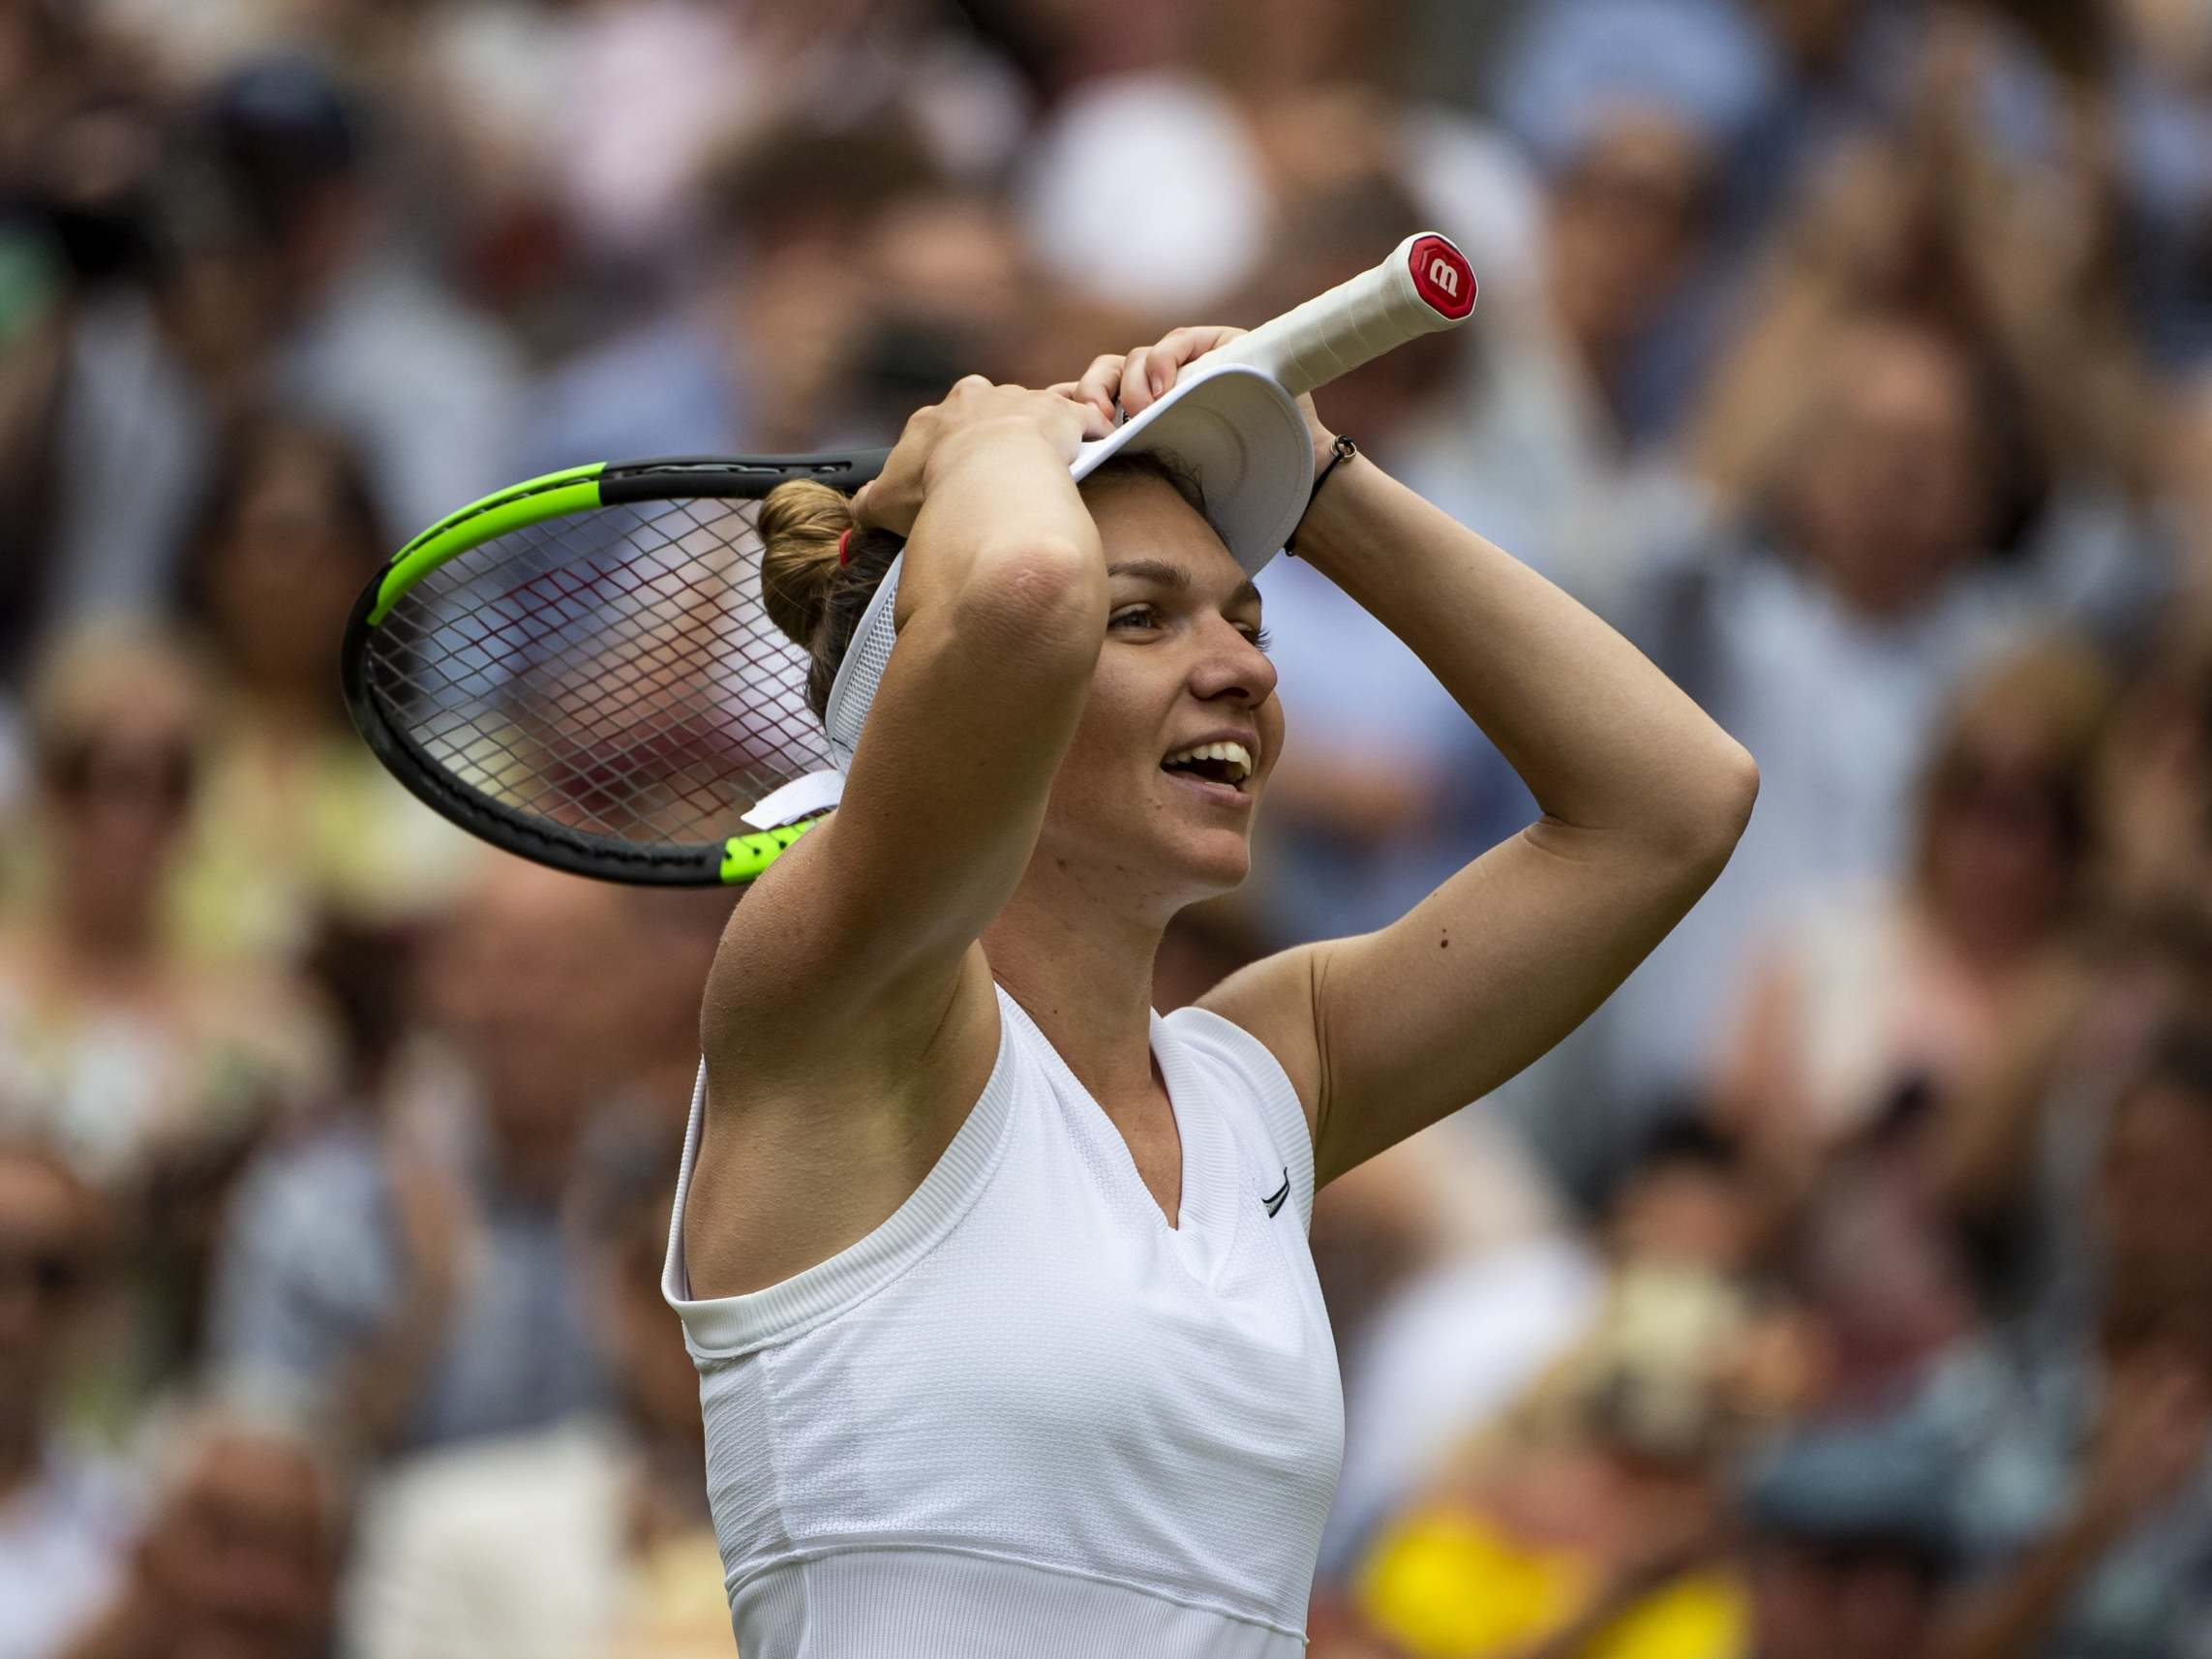 Wimbledon 2019: From listlessness to legend, Simona Halep's star continues to burn brightest